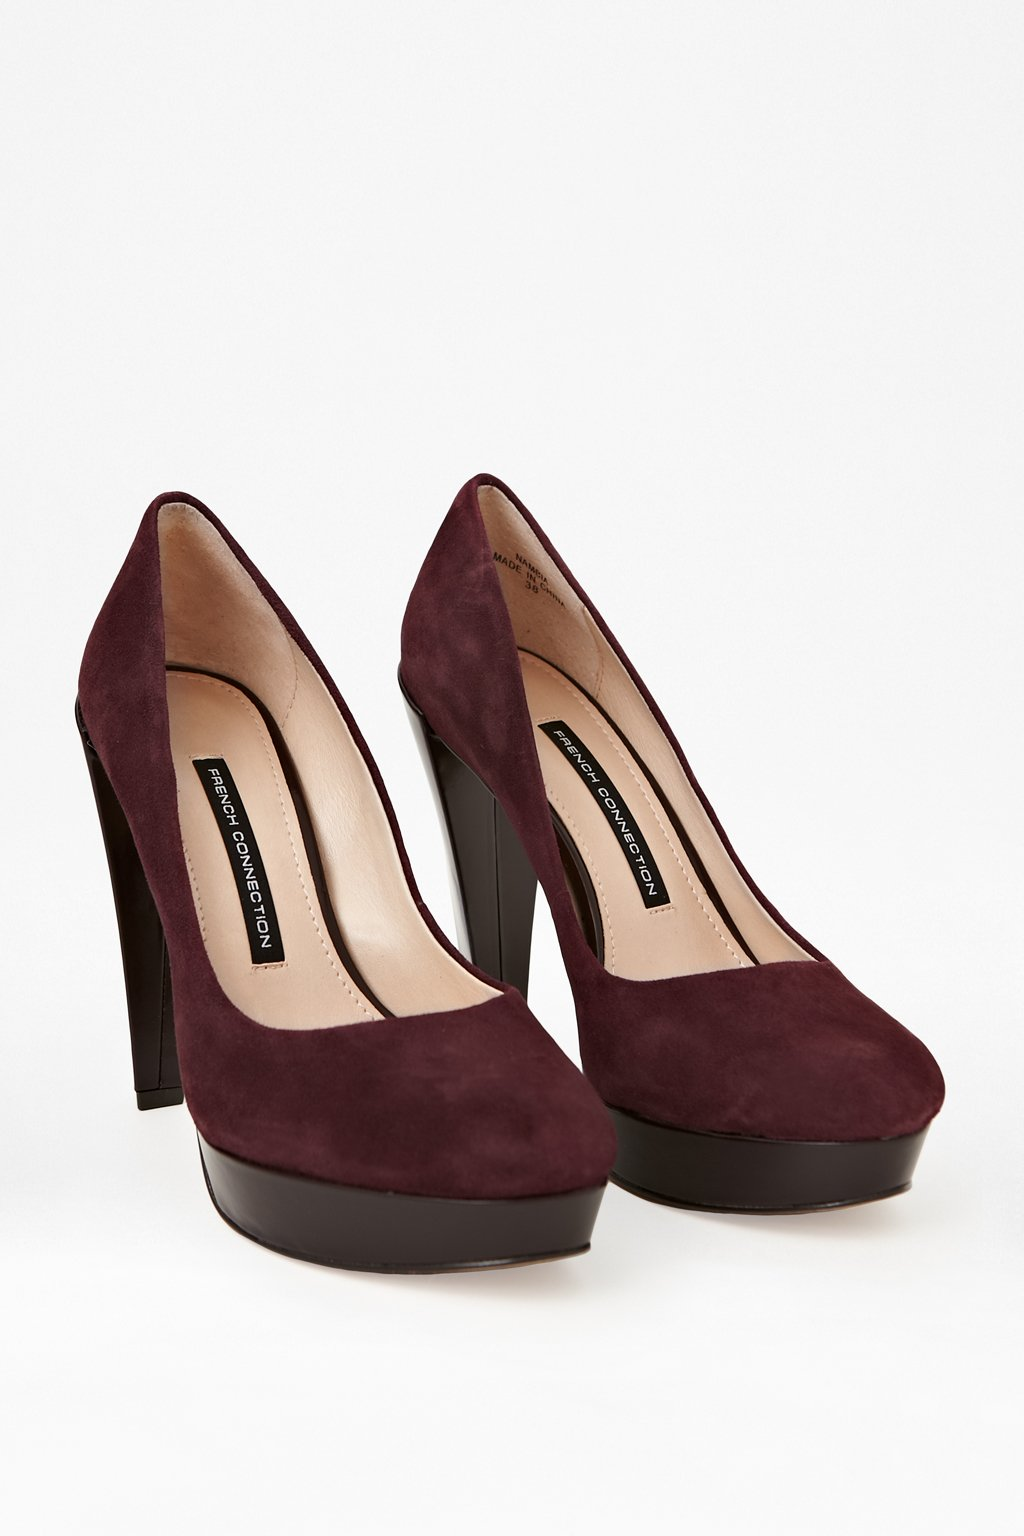 Nambia High-Heeled Leather Pumps $ 109.99